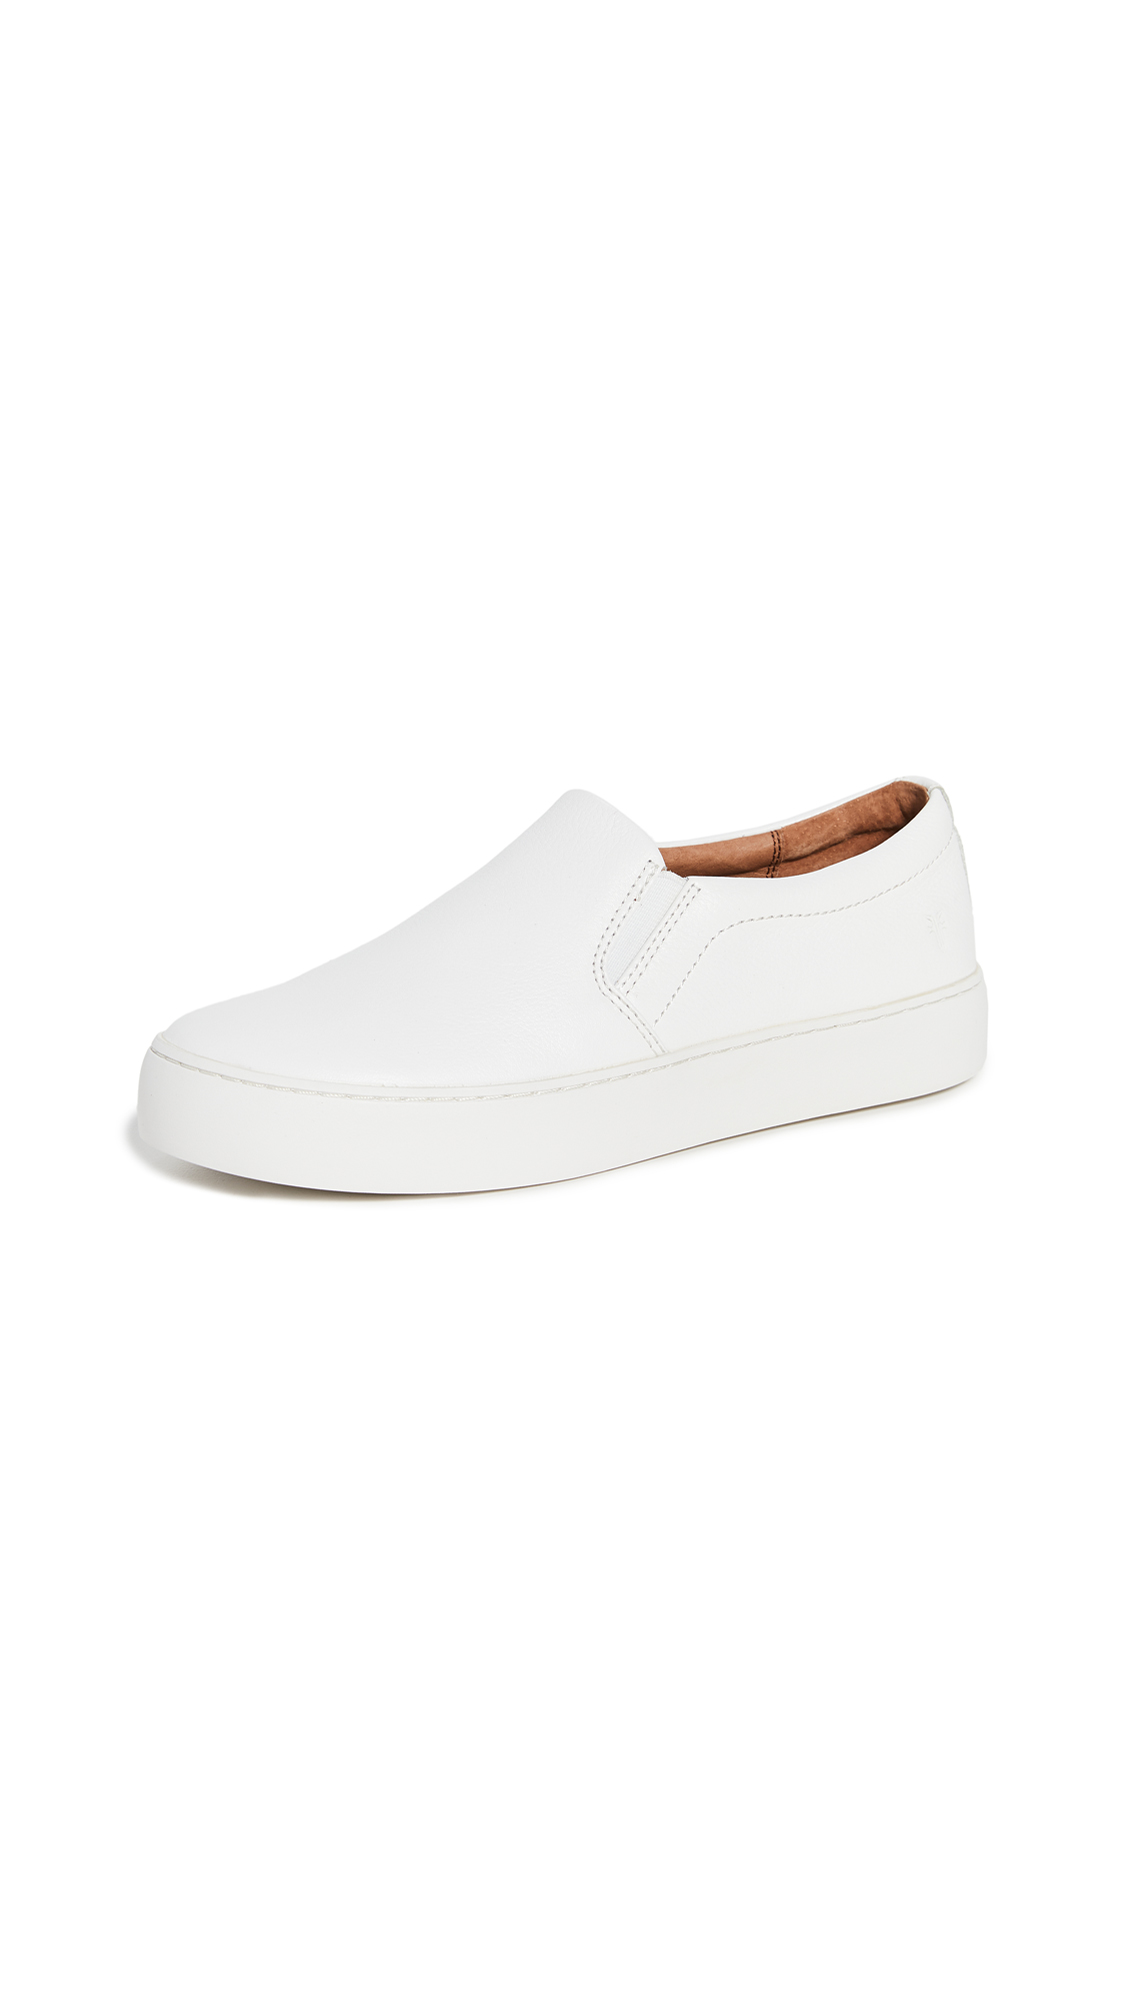 Frye Lena Slip On Sneakers